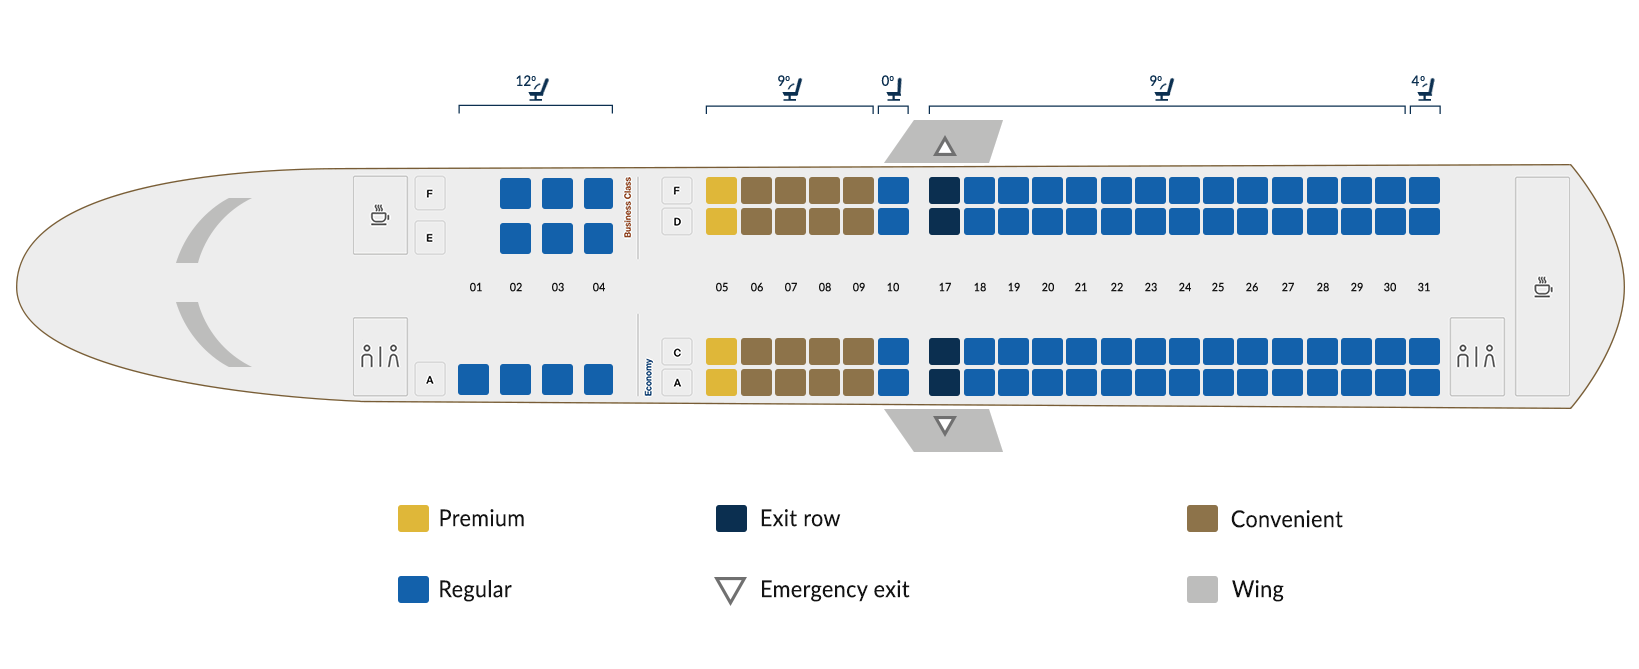 Embraer 190A A - seat map